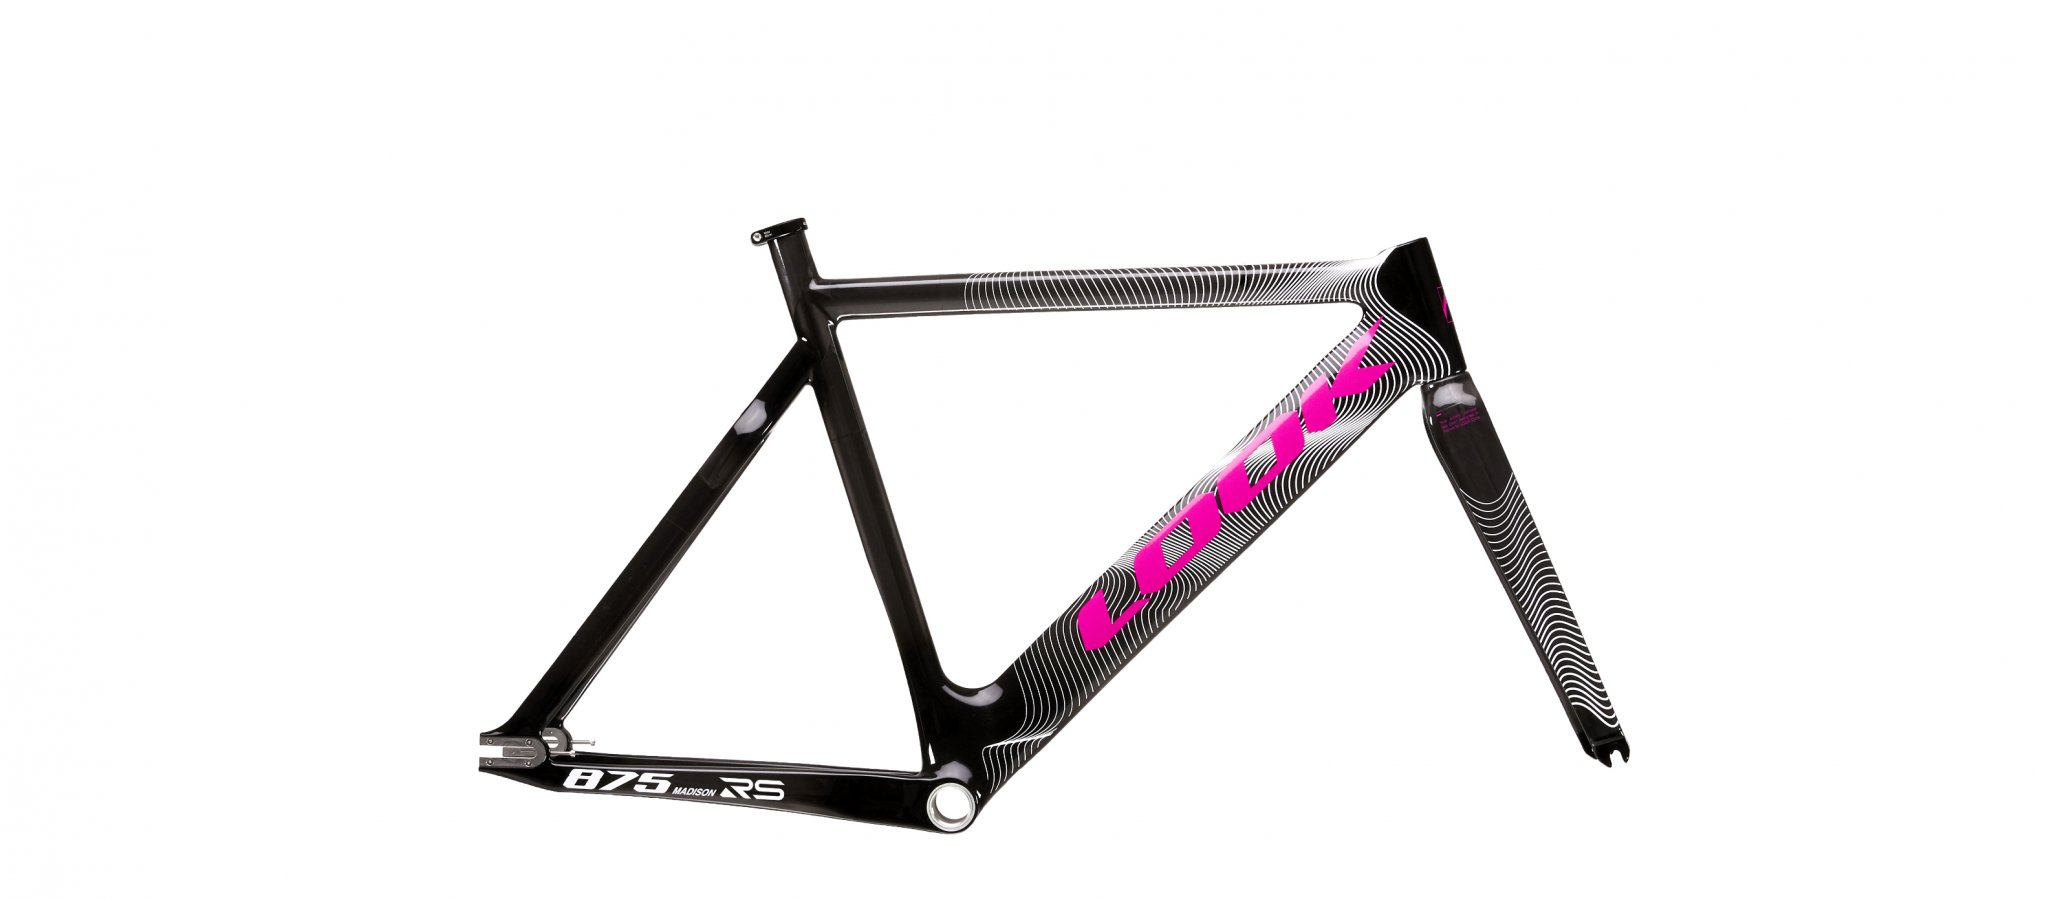 875-madison-rs-team-look-crit-limited-edition